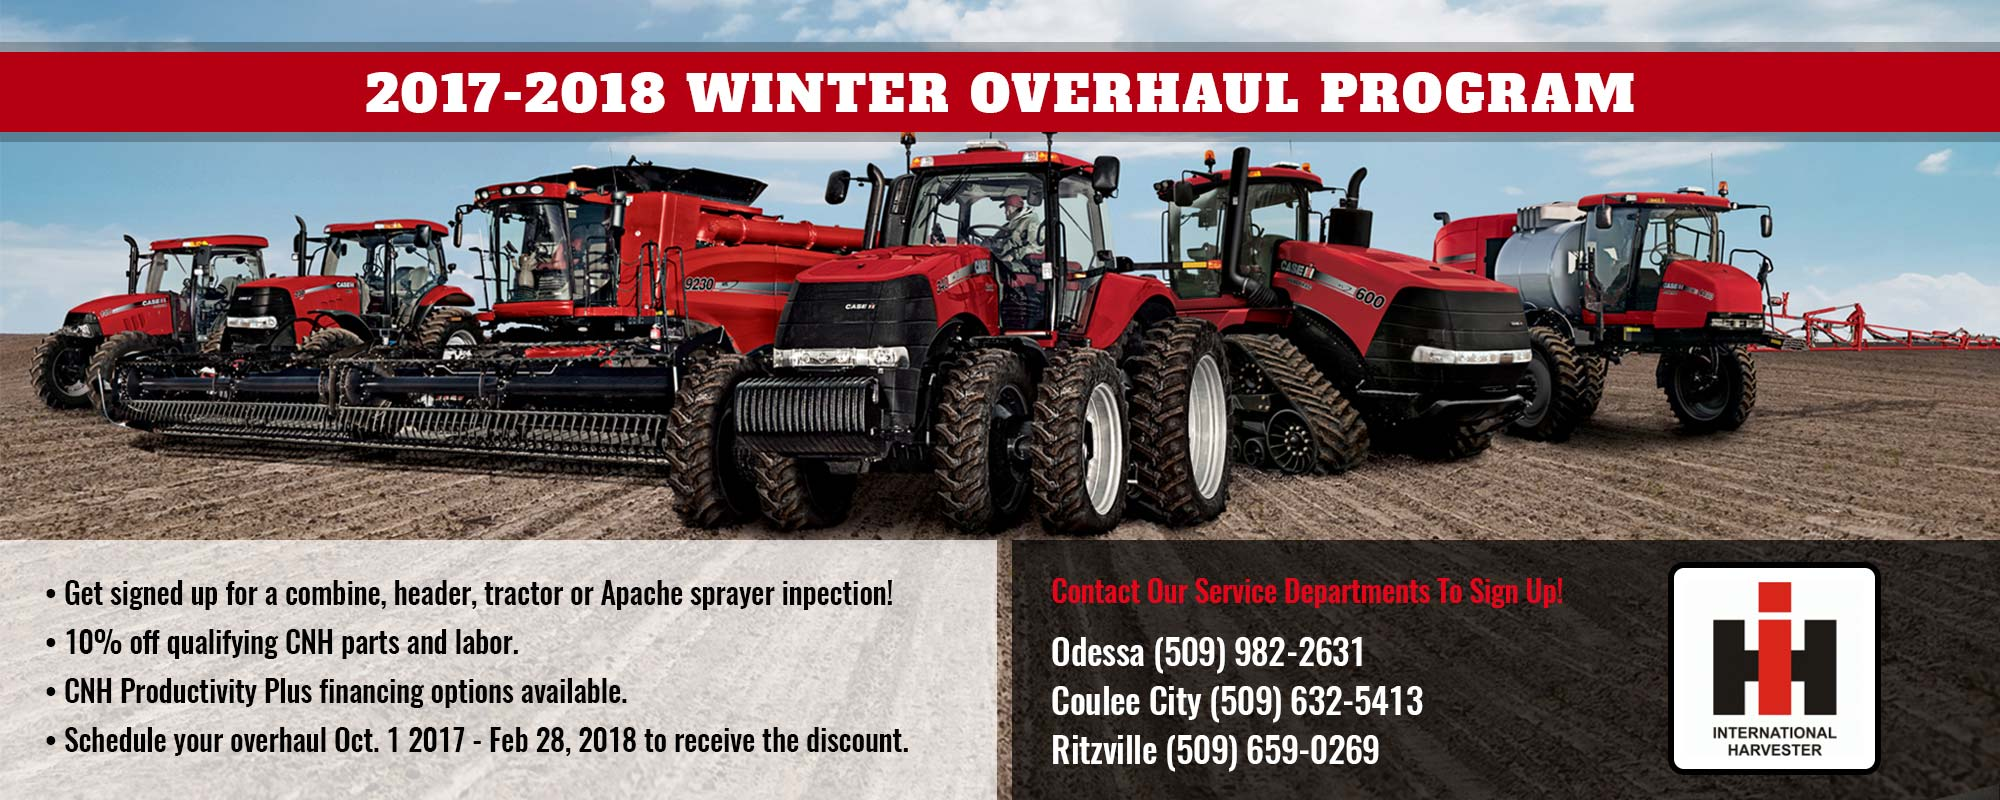 2017-2018 Winter Overhaul Program